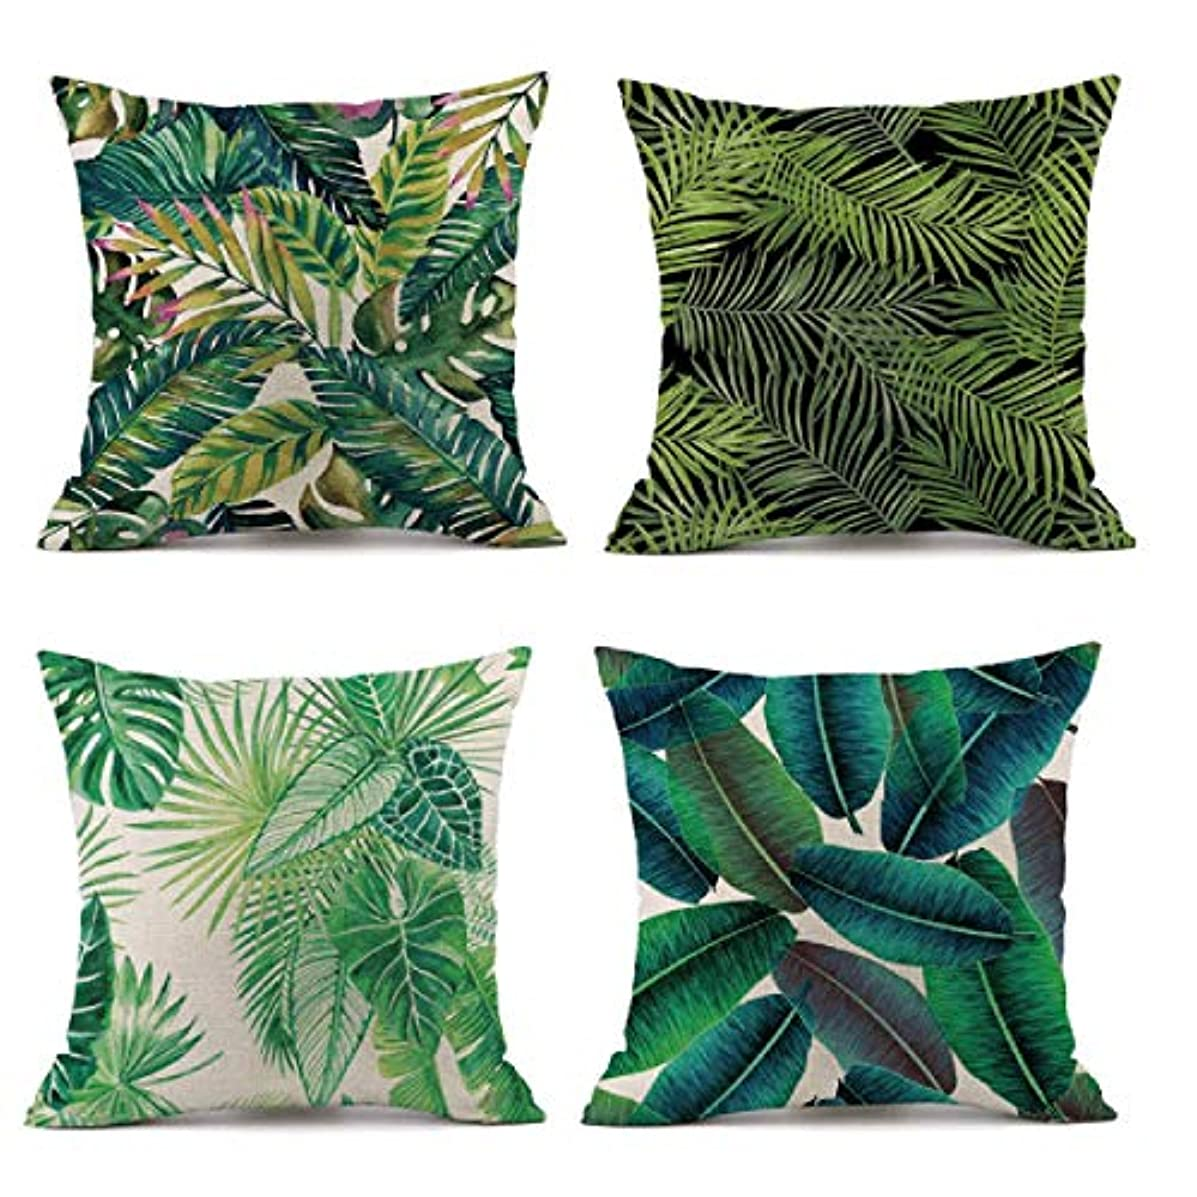 MELOODY Tropical Palm Leaves Summer Green Throw Pillow Covers Set of 4 Outdoor Patio Couch Sofa Decorative Cotton Linen Square Body Pillow Case Covers with Zipper 18x18 Inch